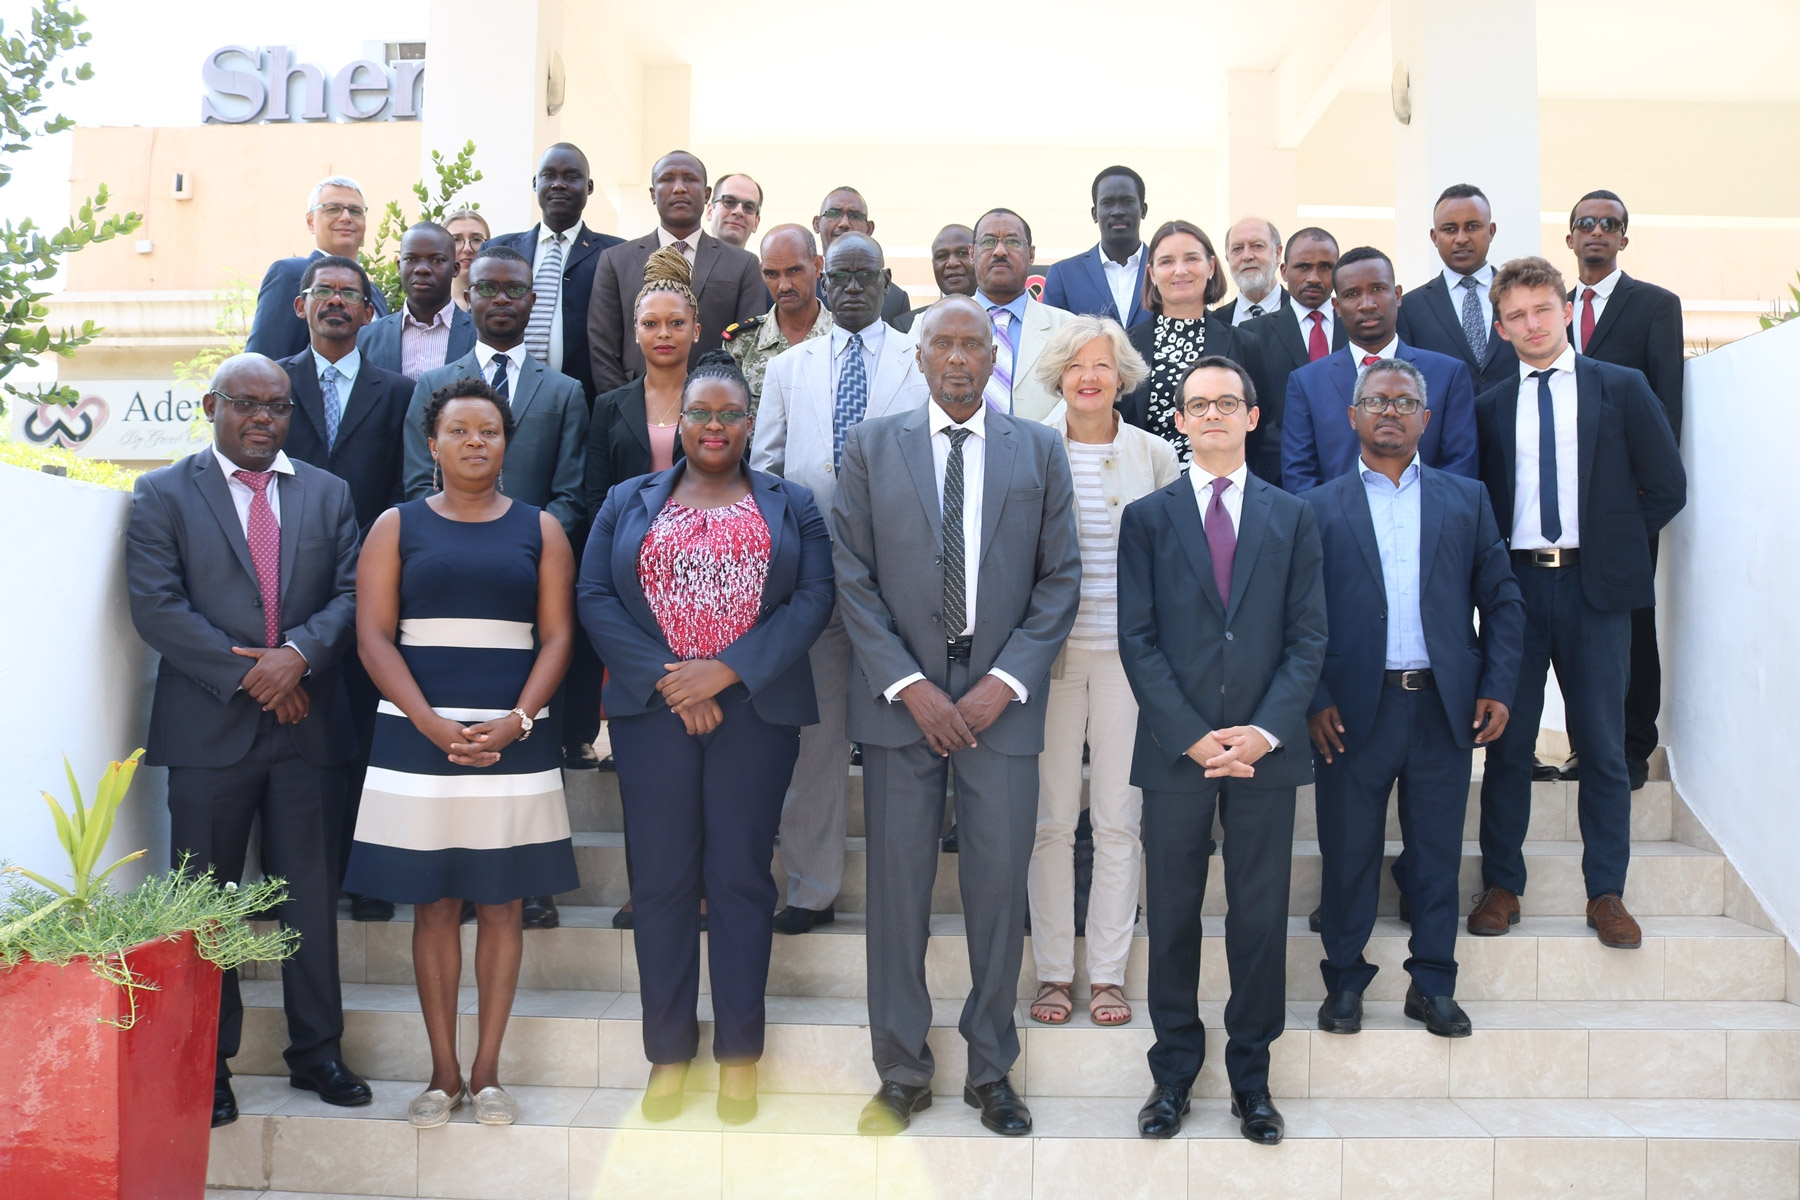 IUE faculty member at arms control event in Africa